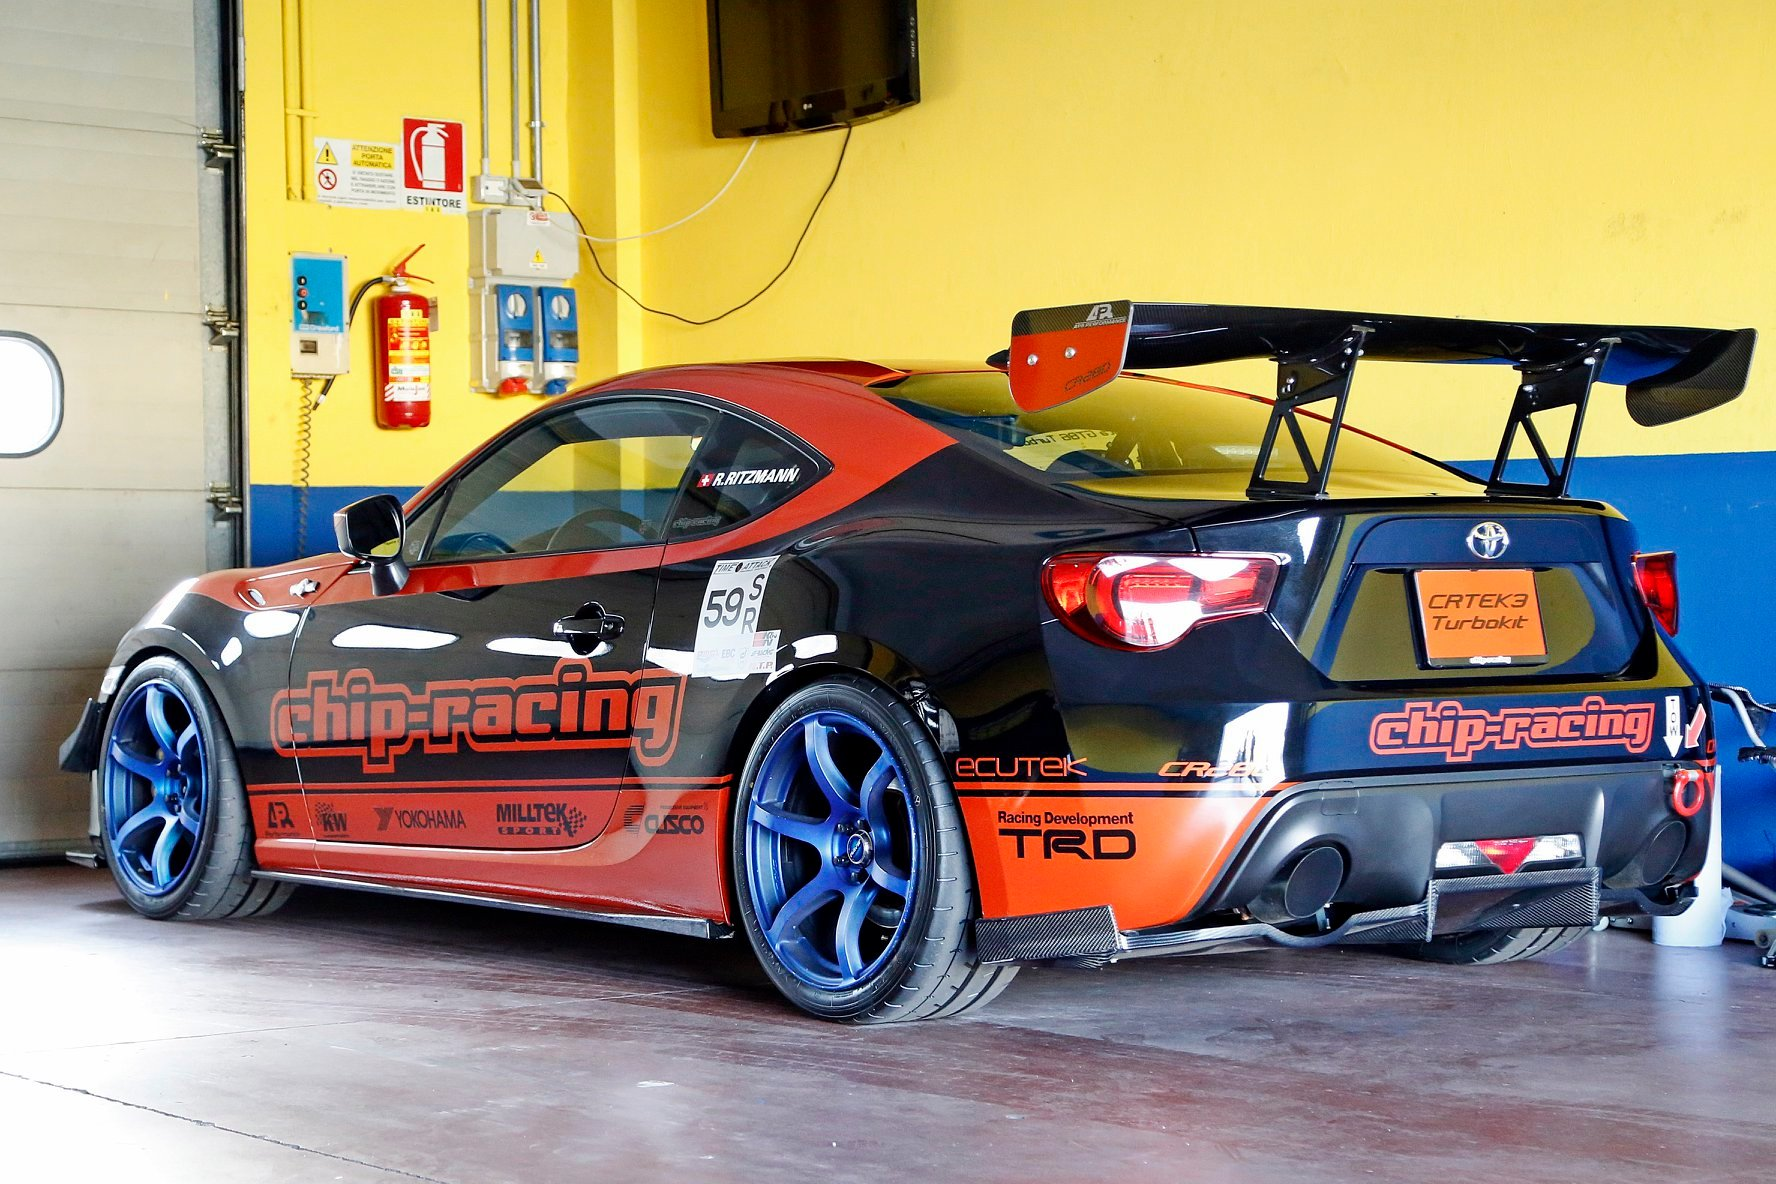 Time Attack Italia Chip-Racing GT86 Turbo 10